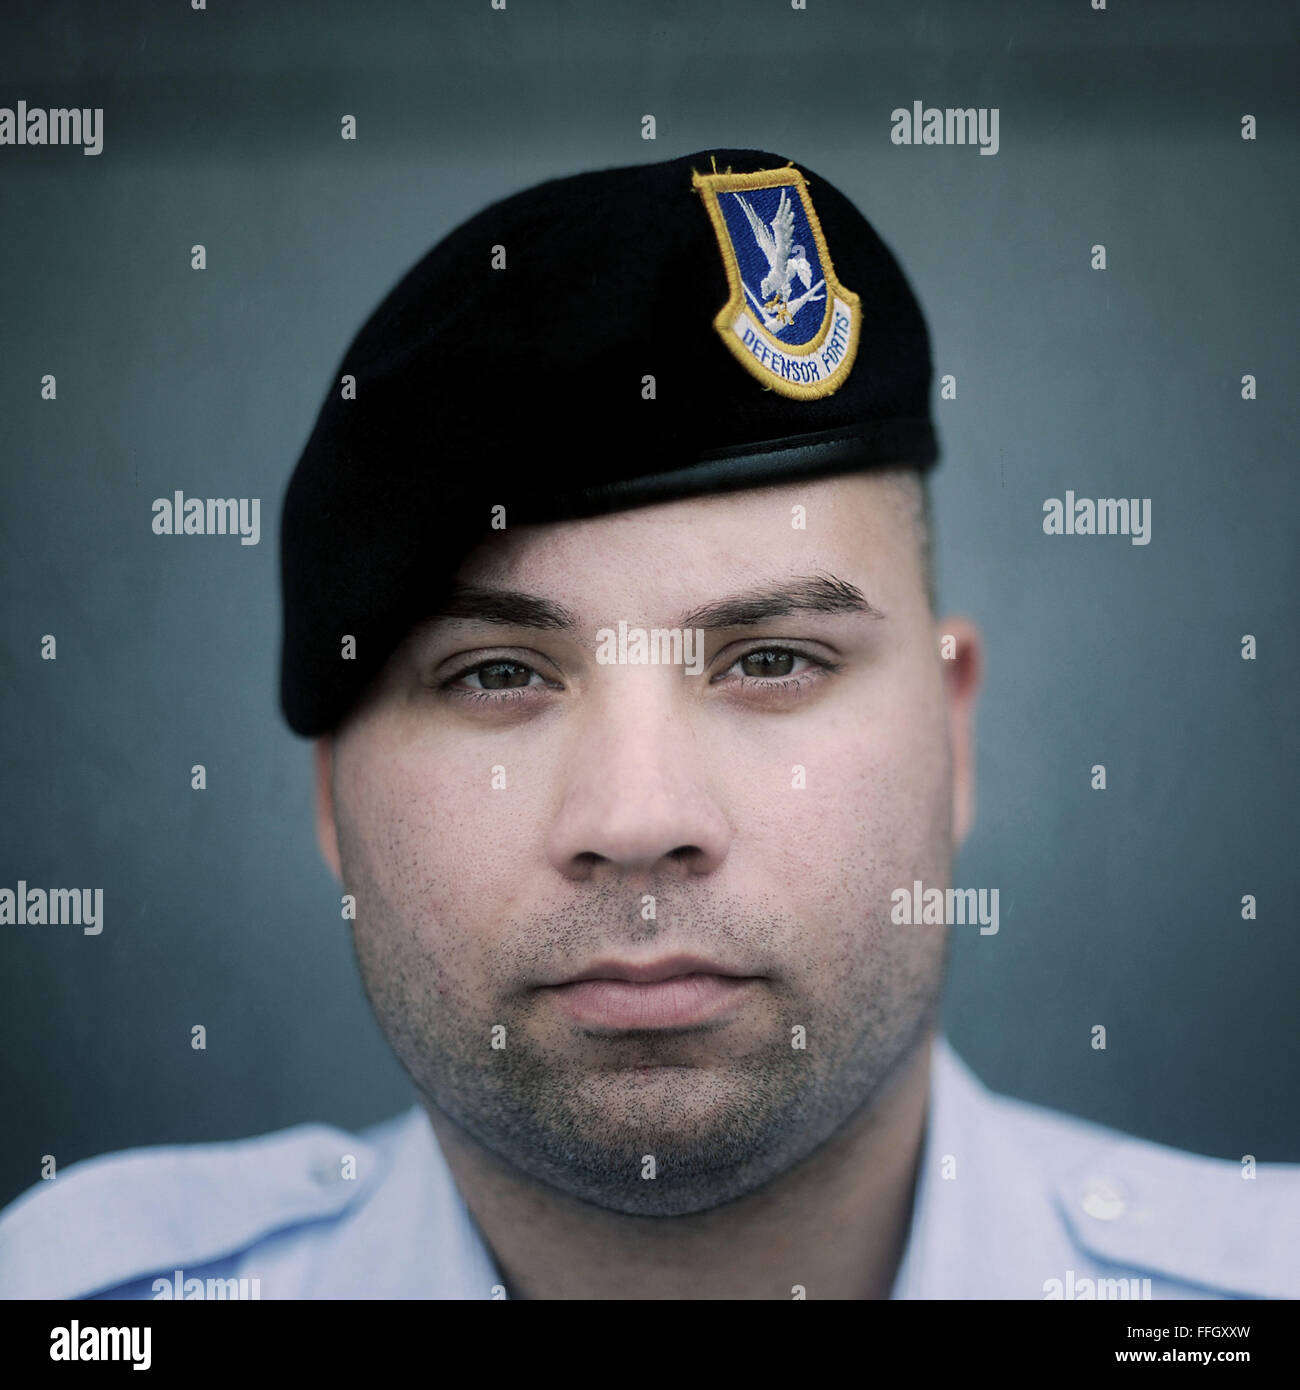 Name: Senior Airman Isaac Ramos Where they are from: 514th Security Forces Reason for visiting: Military Working - Stock Image